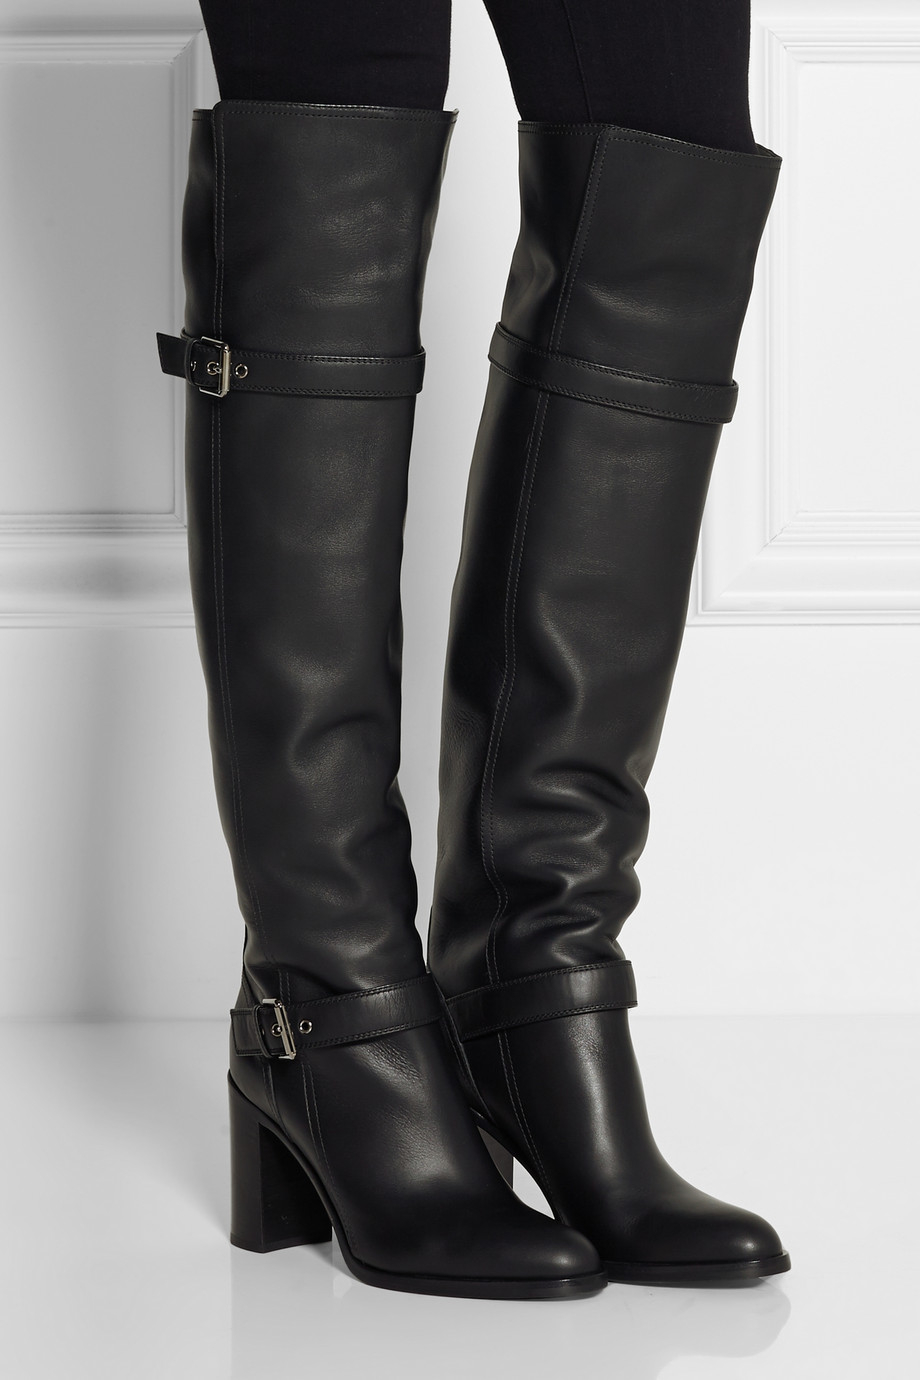 Black Leather Over The Knee Boots S7Uo0710